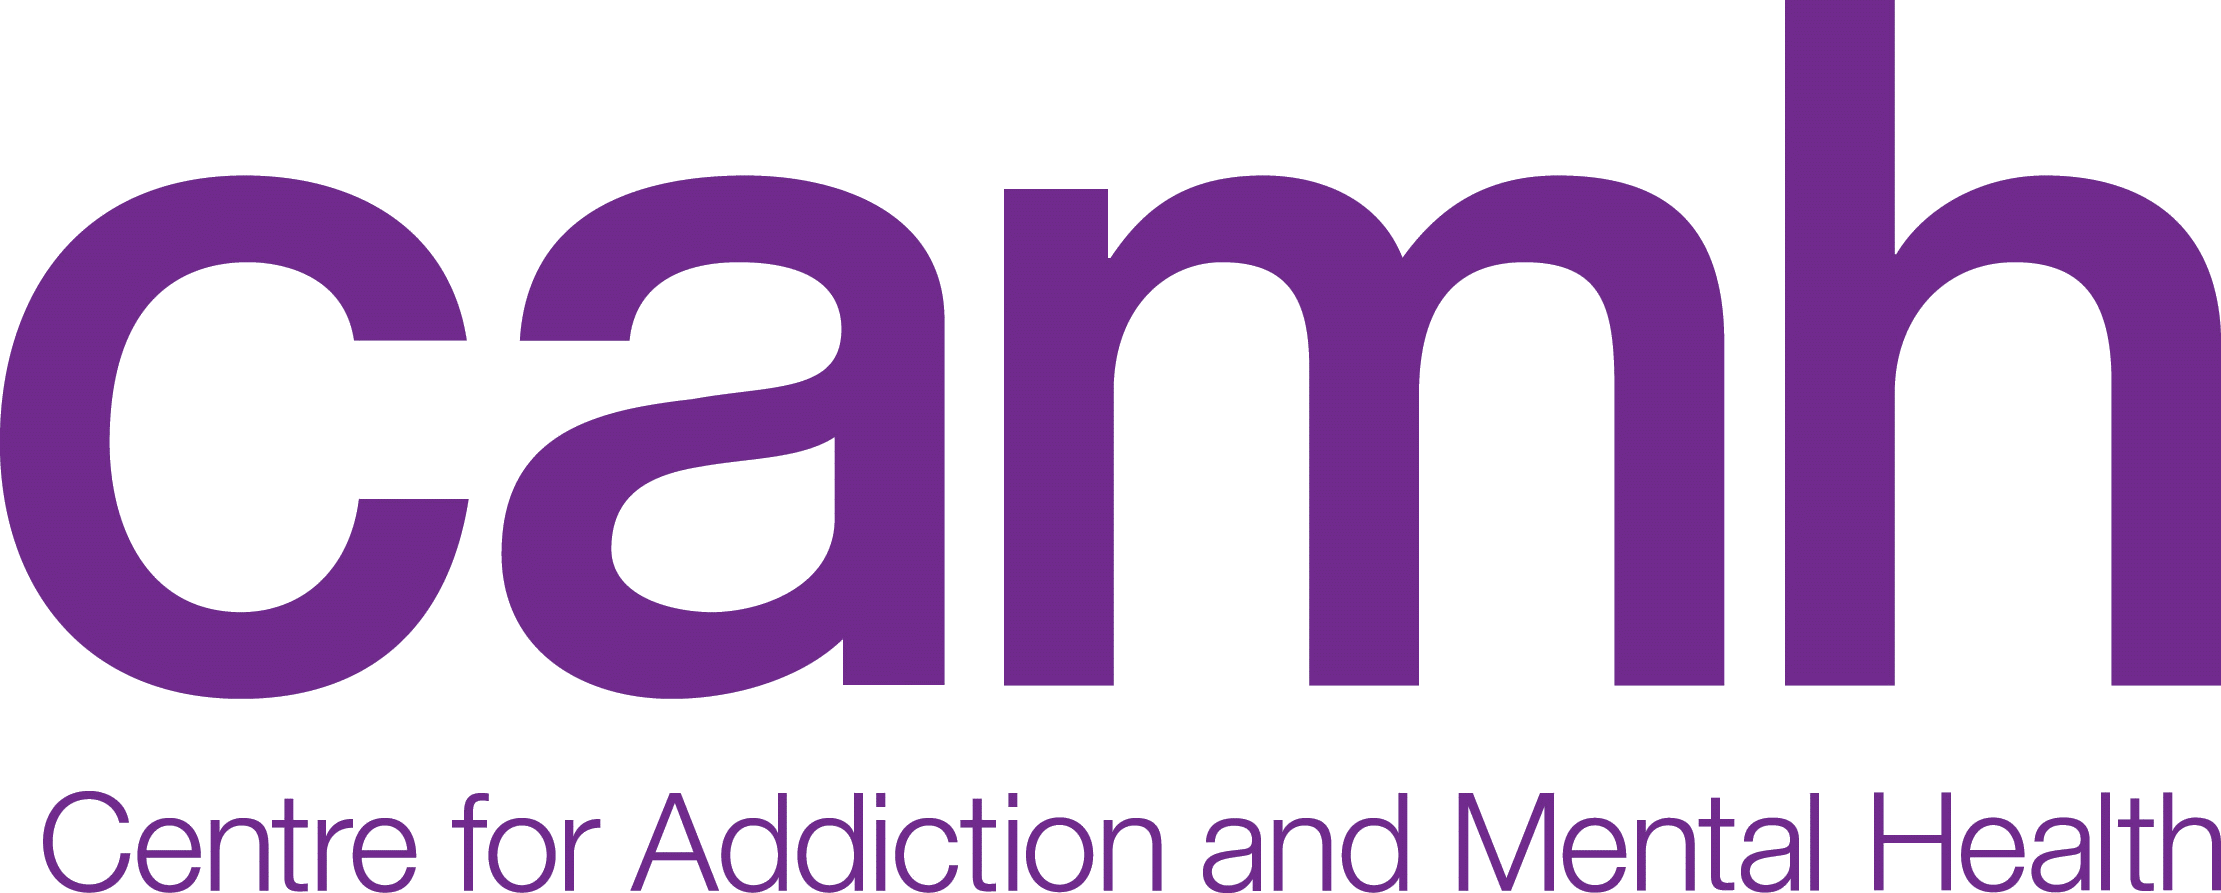 Camh_logo_purple.png